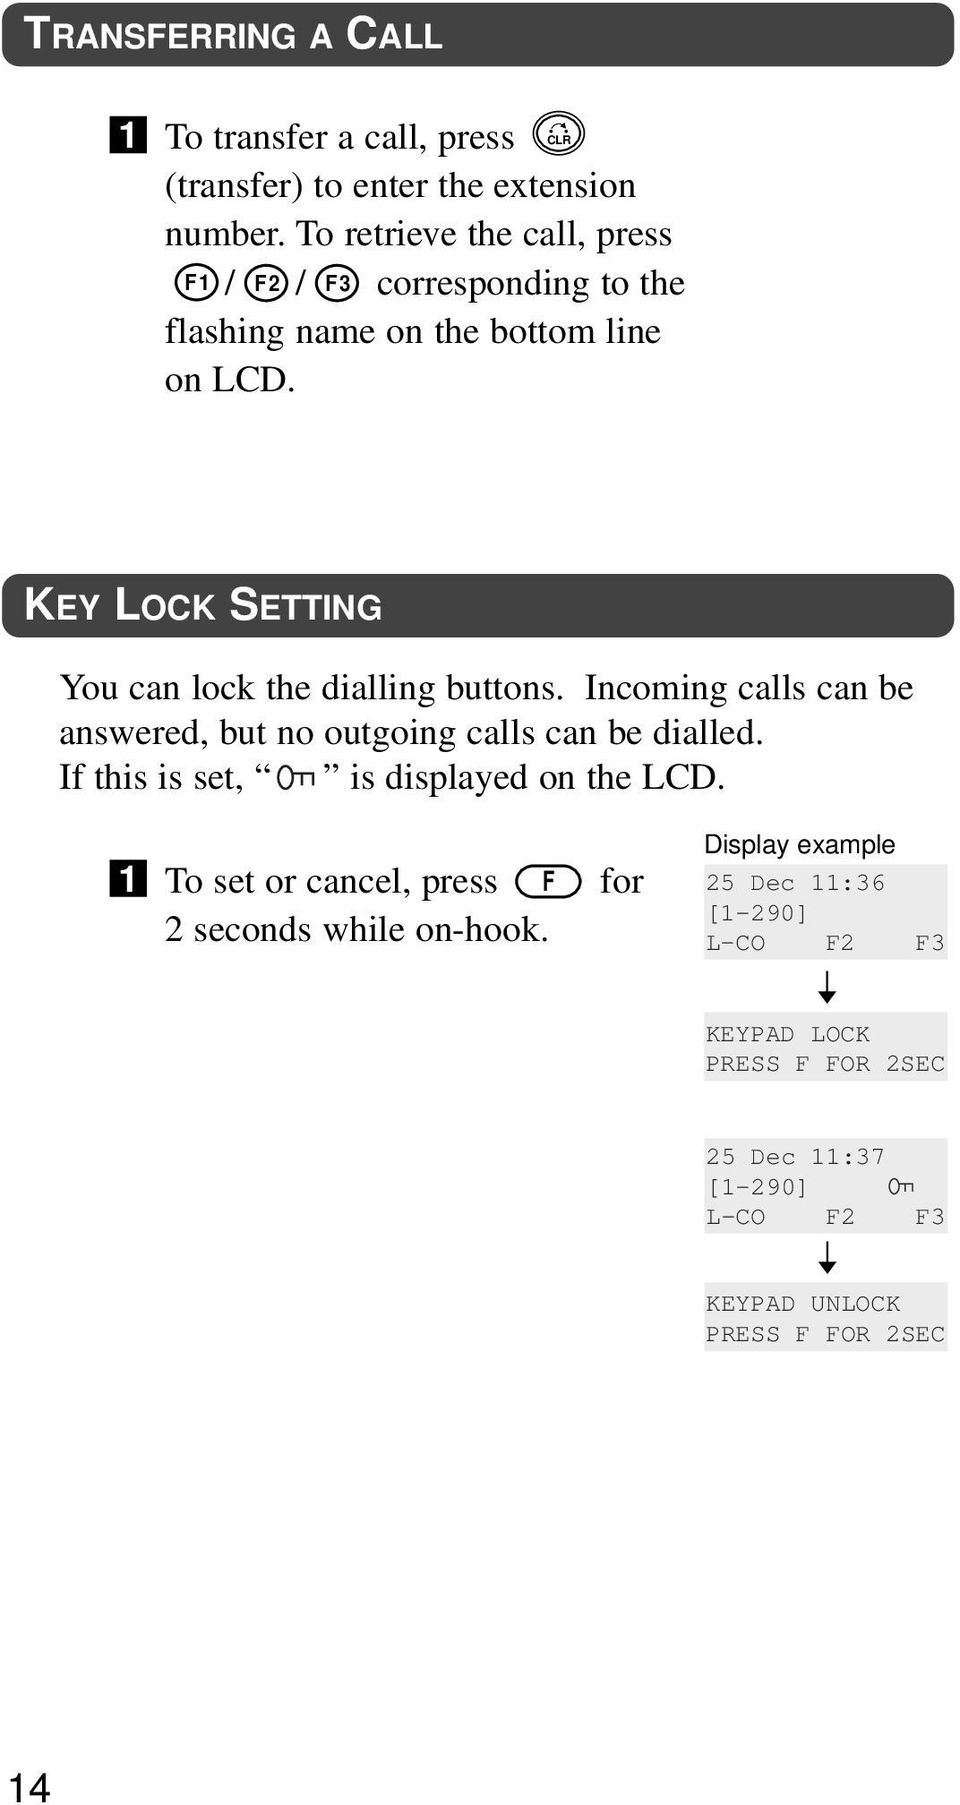 KEY LOCK SETTING You can lock the dialling buttons. Incoming calls can be answered, but no outgoing calls can be dialled.